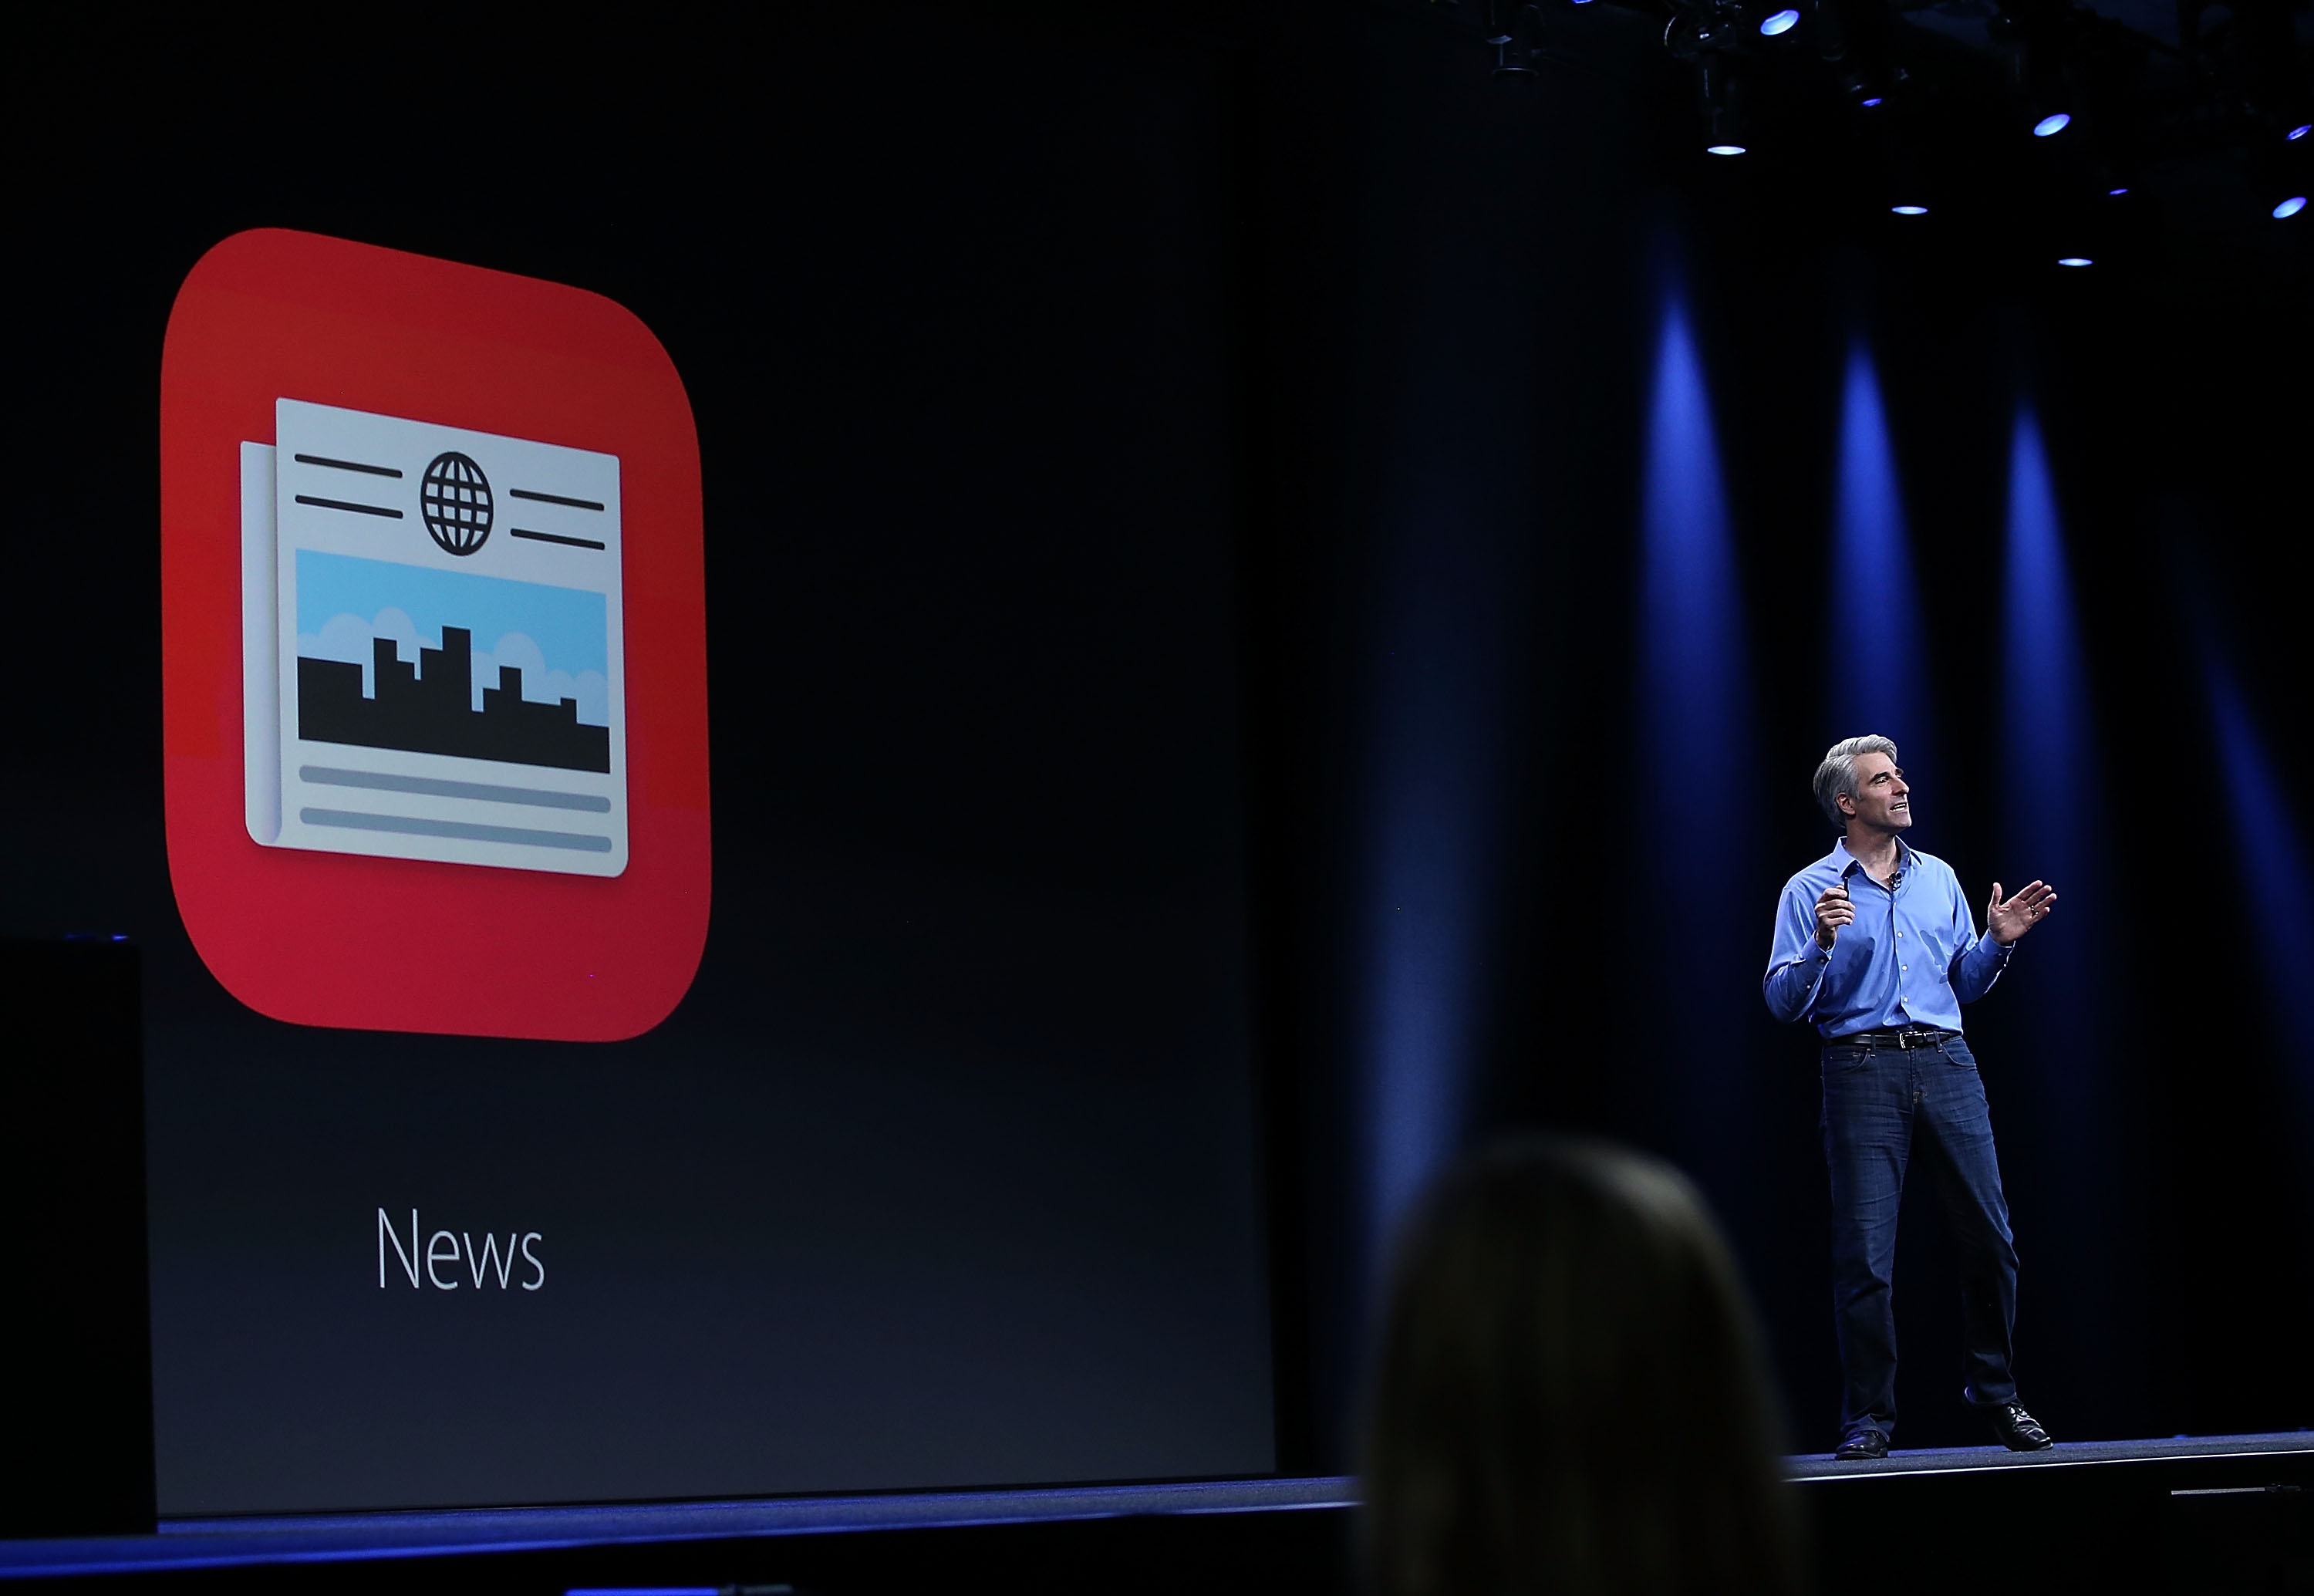 Dove si leggeranno le news? Via Apple News, Facebook, Snapchat, Twitter…